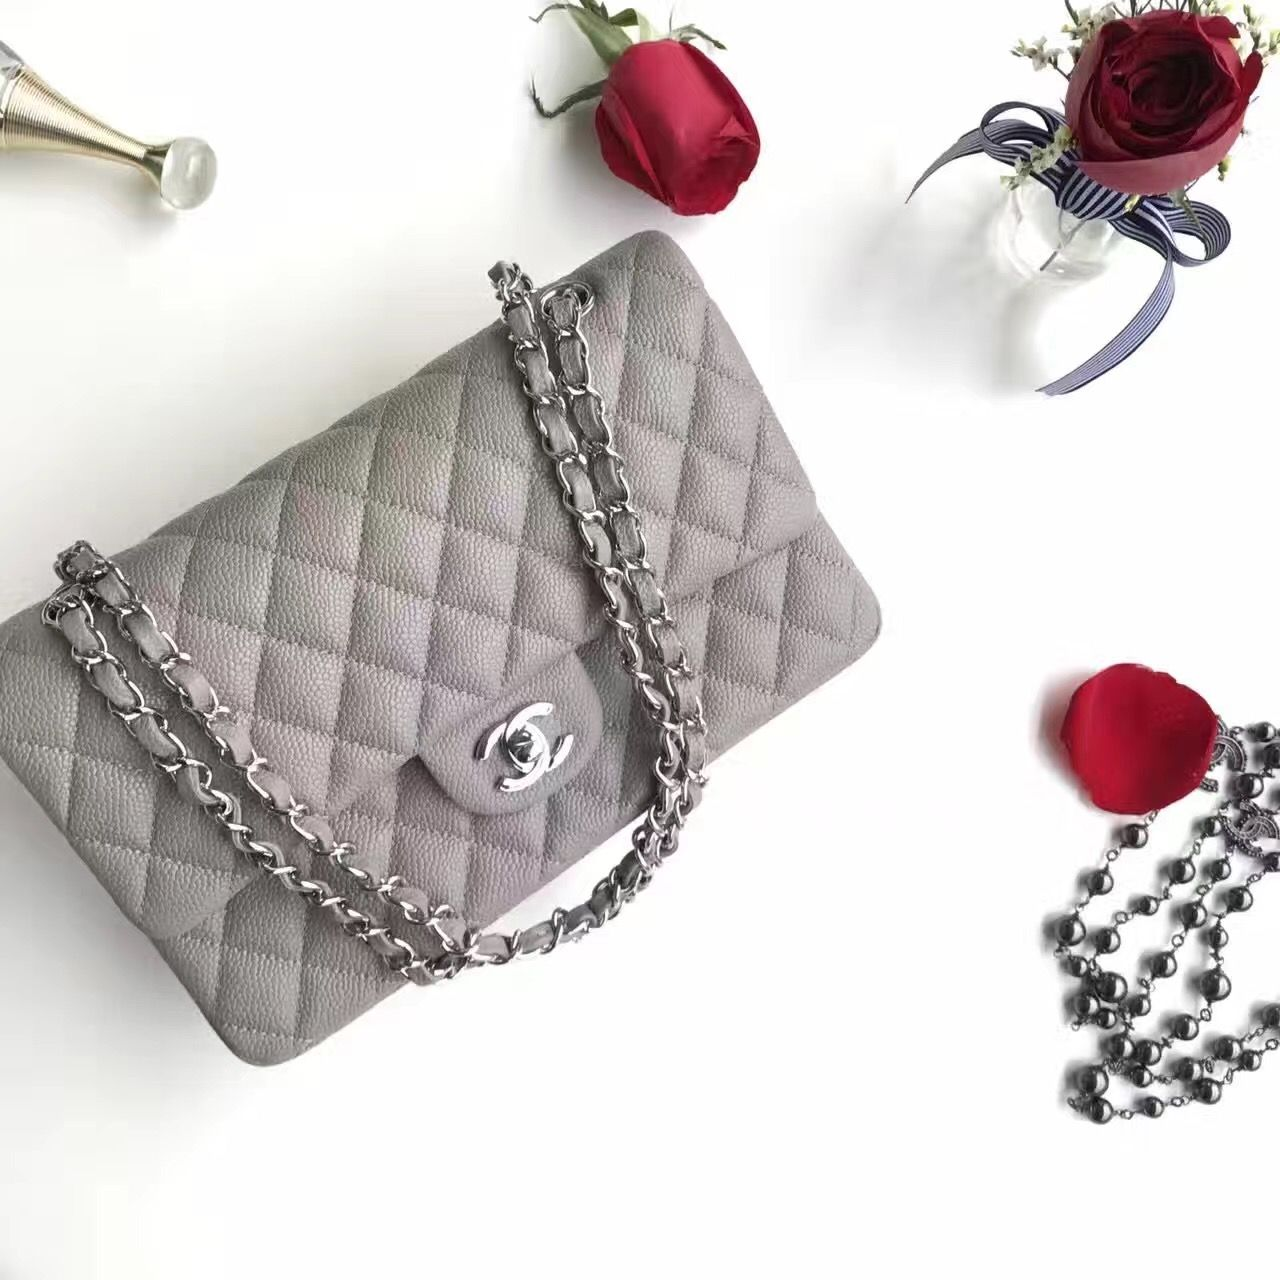 63a30c35f619f2 Authentic Quality 1:1 Mirror Replica Chanel Classic Flap Bag Grey Caviar  Leather Silver Hardware